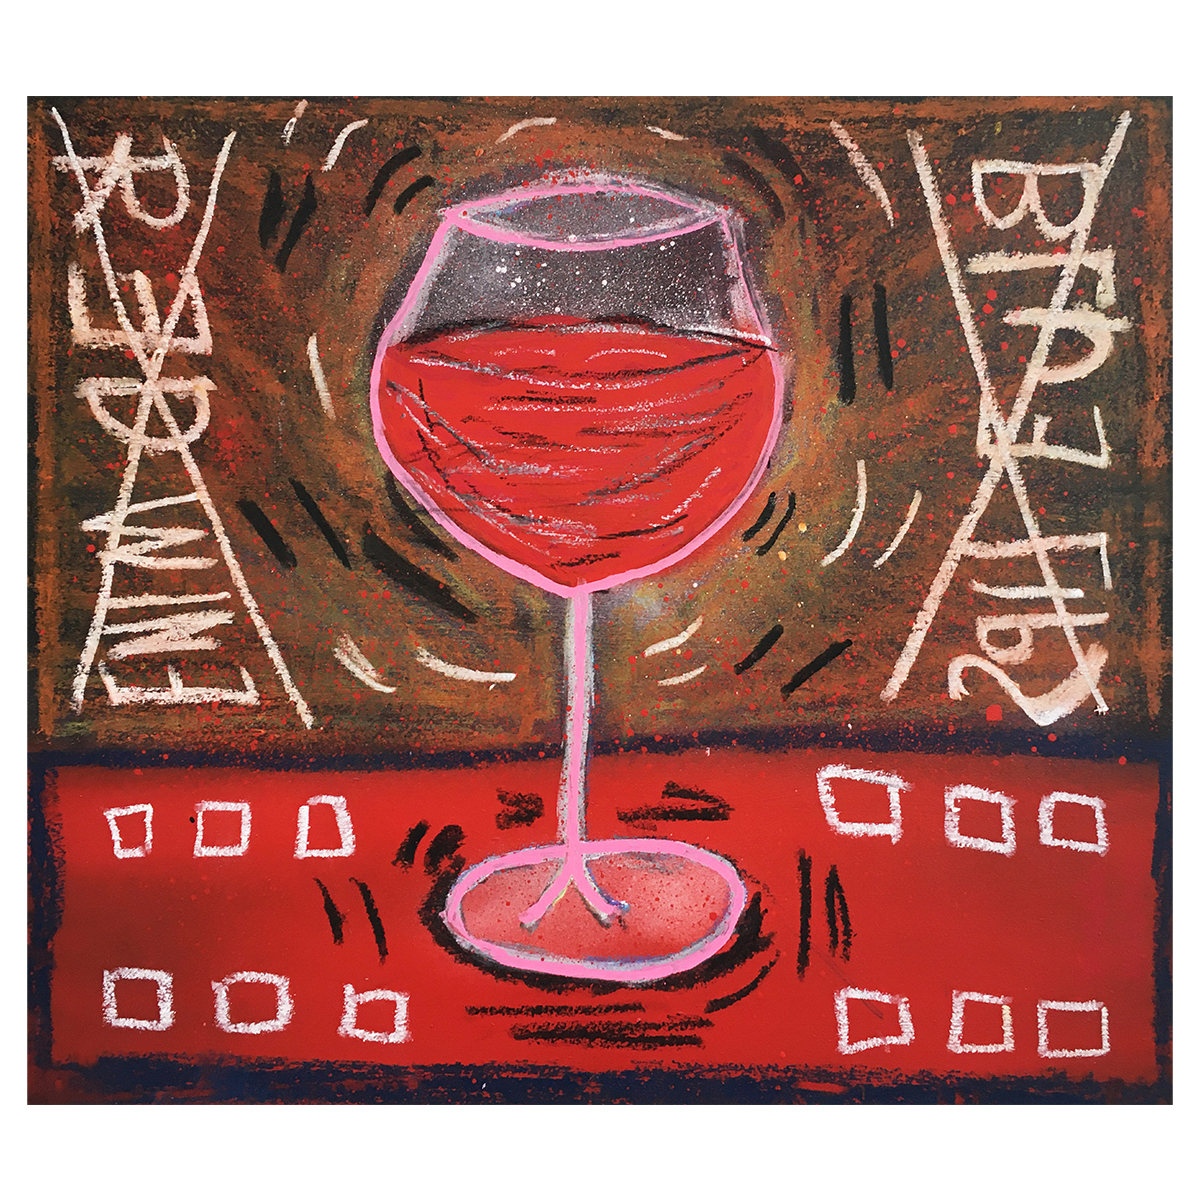 RED WINE BLUE LIPS - Frank Willems